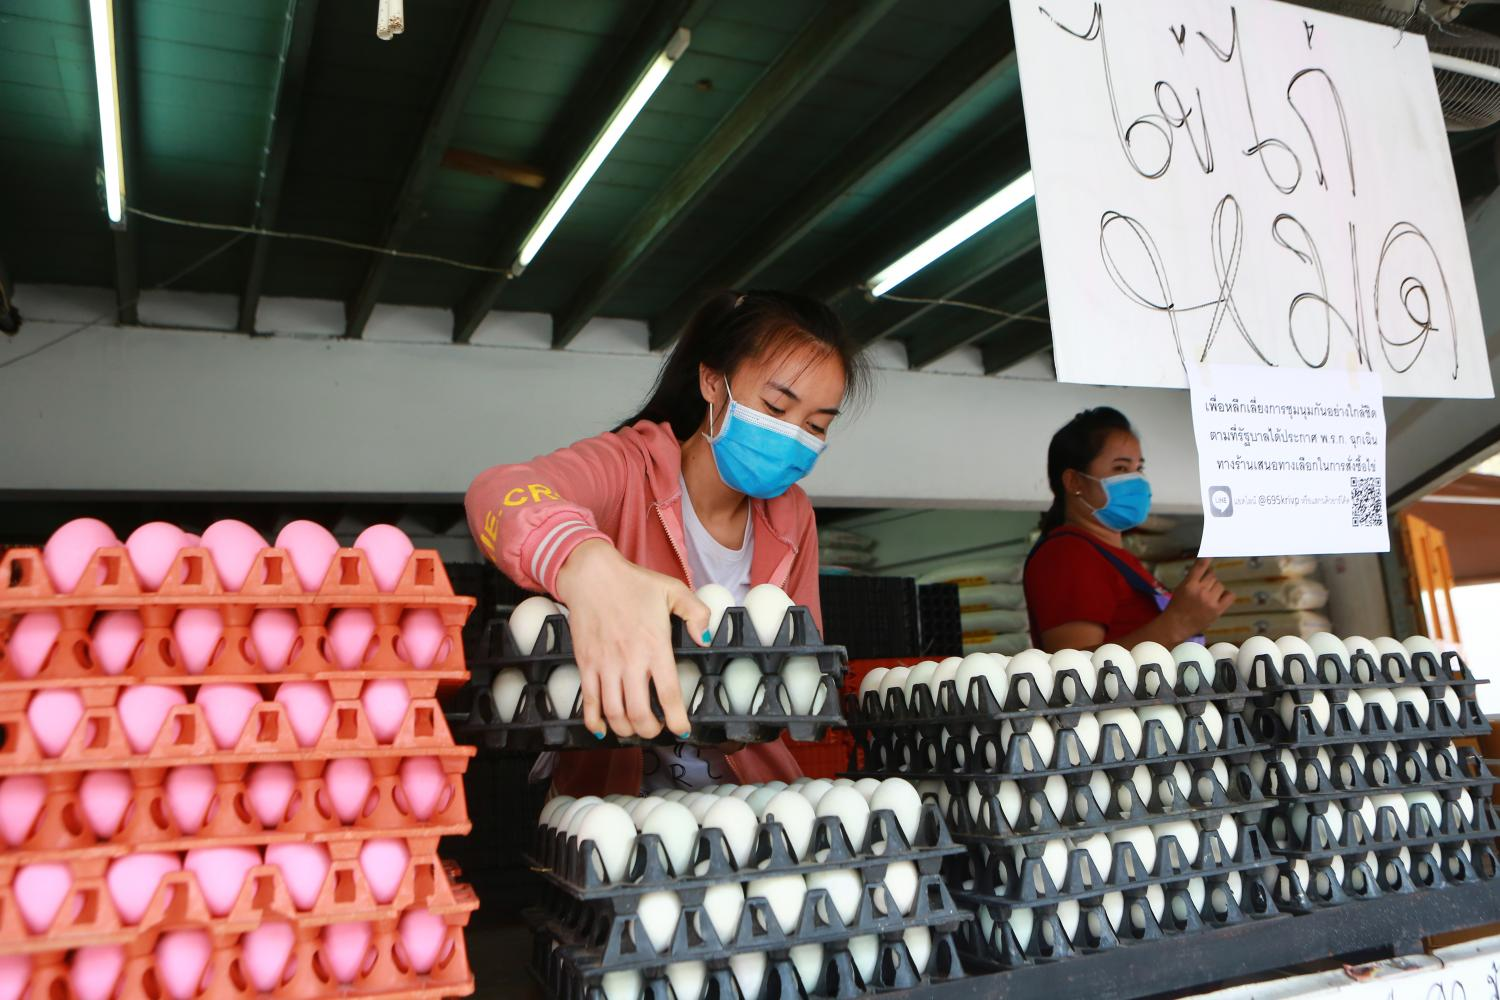 An egg vendor in Samut Prakan's Pak Nam market puts up a sign saying she has sold out of fresh eggs. People have been rushing to stockpile eggs after the government urged everyone to stay home during the outbreak.(Photo by Somchai Poomlard)